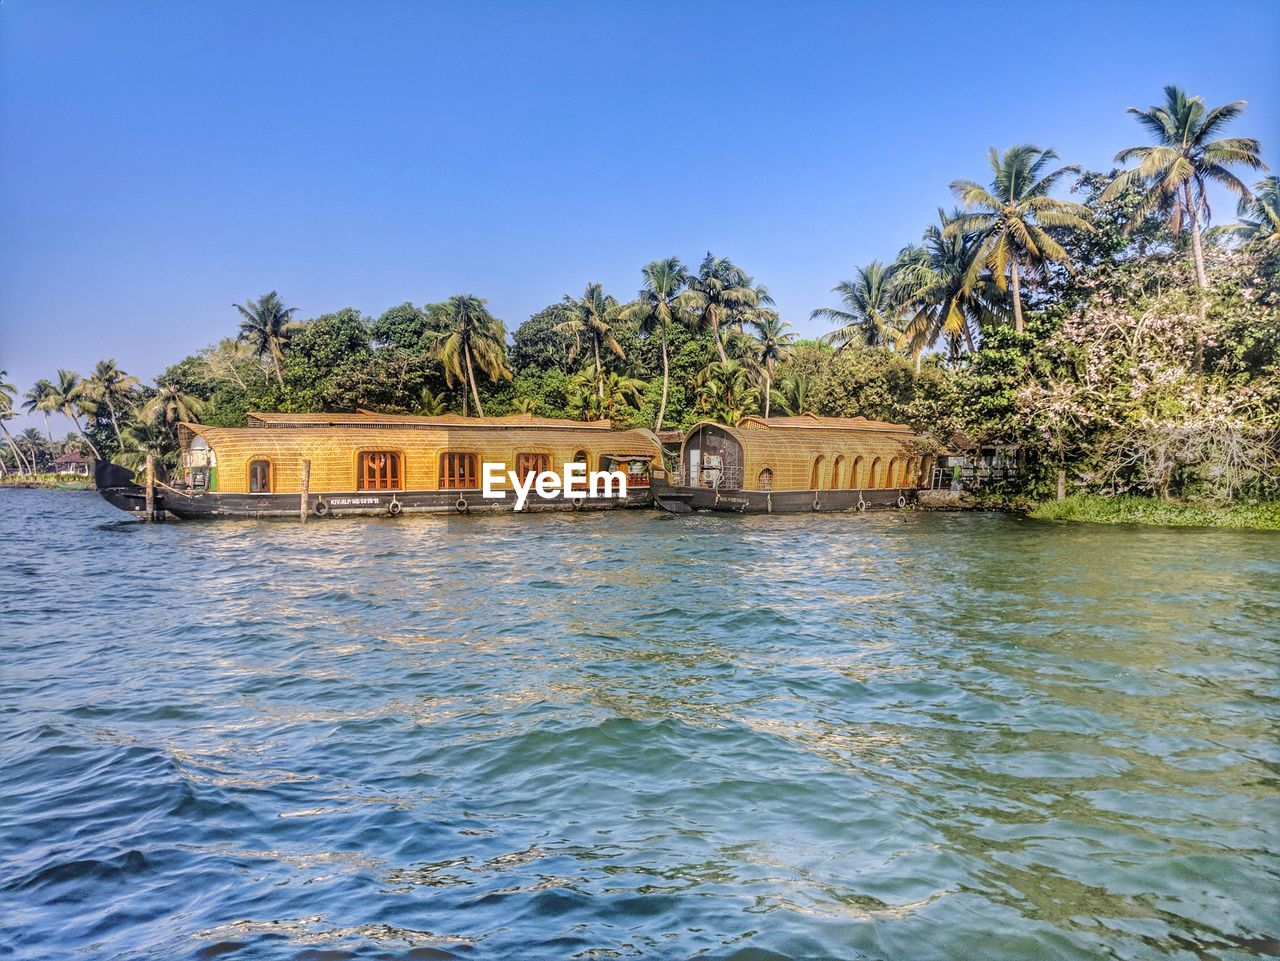 water, tree, sky, architecture, built structure, plant, waterfront, tropical climate, nature, palm tree, clear sky, blue, no people, day, building exterior, scenics - nature, building, tranquility, house, outdoors, coconut palm tree